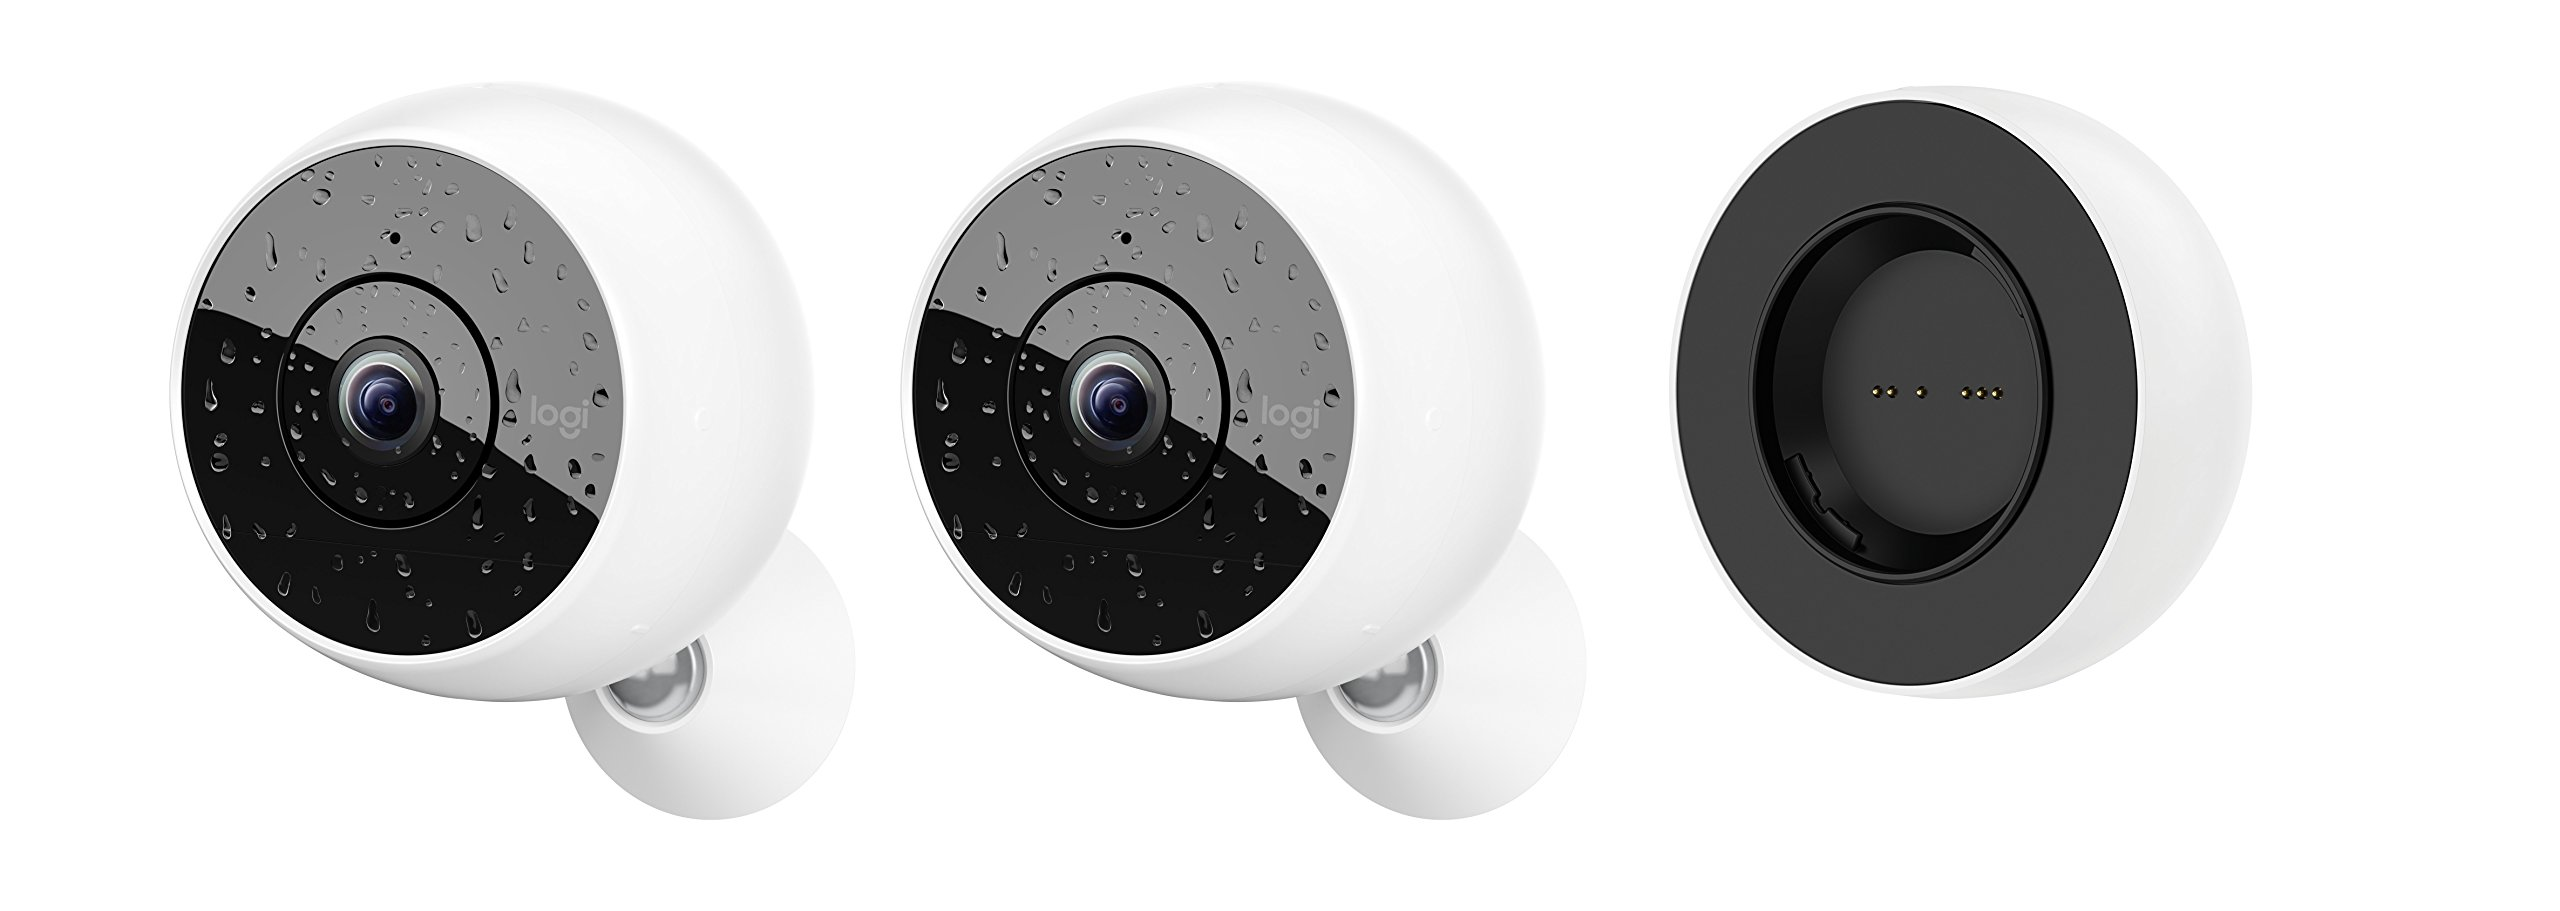 Logitech Circle 2 COMBO PACK: 2 Indoor/Outdoor Weatherproof Wireless Home Security Cameras + Rechargeable Battery (Person Detection, 24-Hr Free Time-Lapse), Works with Alexa and Google Assistant